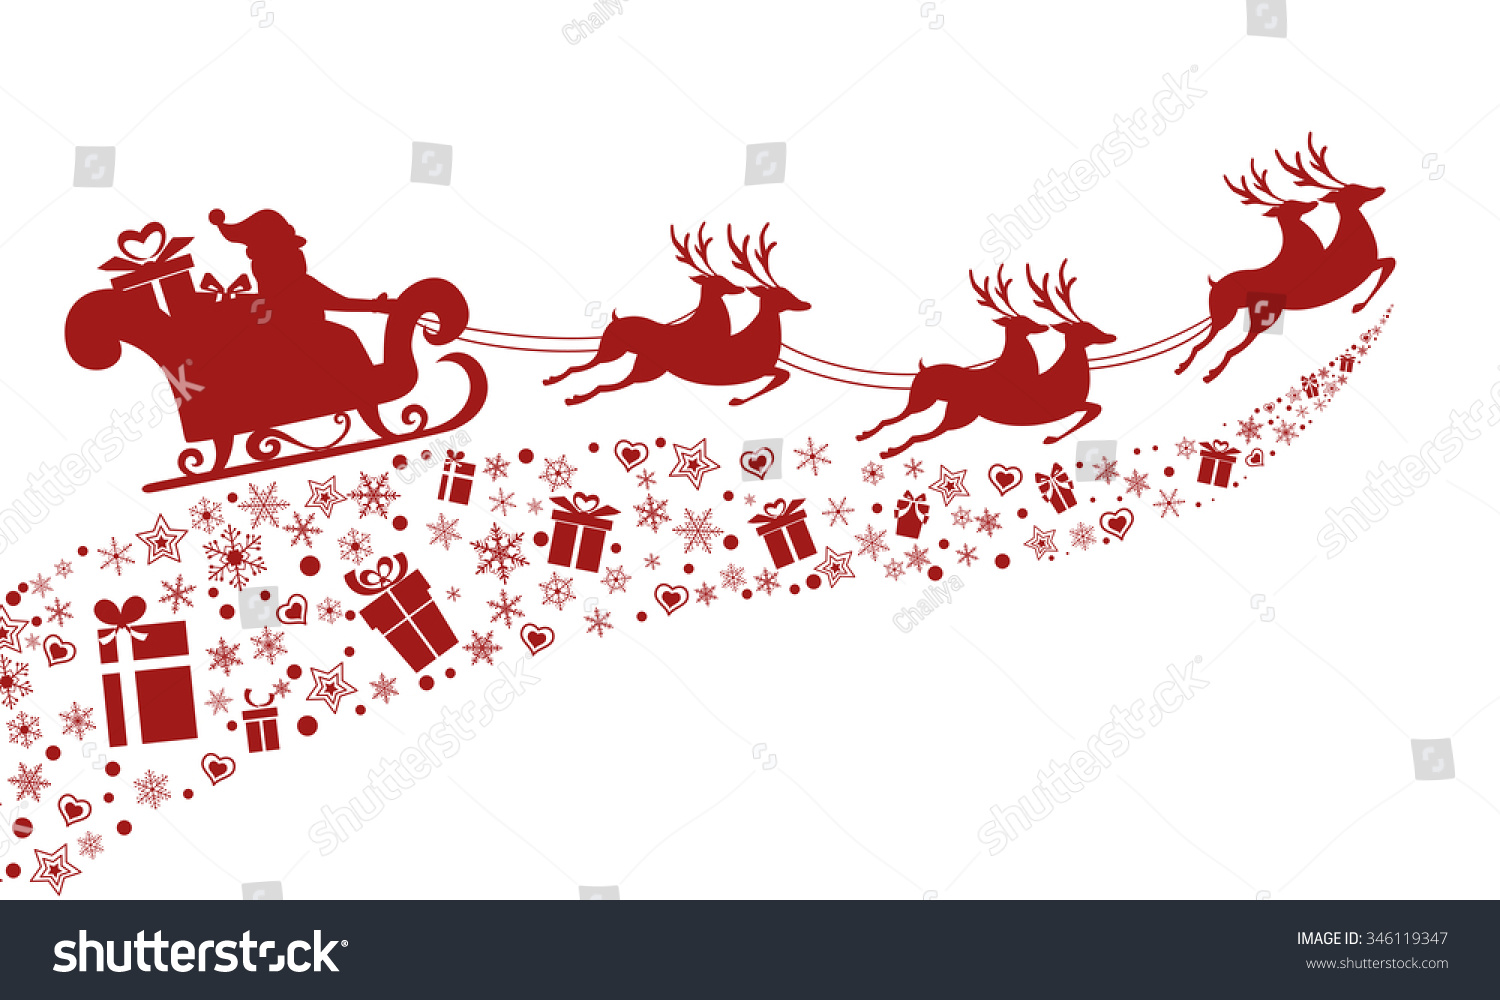 online image   photo editor shutterstock editor santa sleigh clipart santa and sleigh silhouette clipart